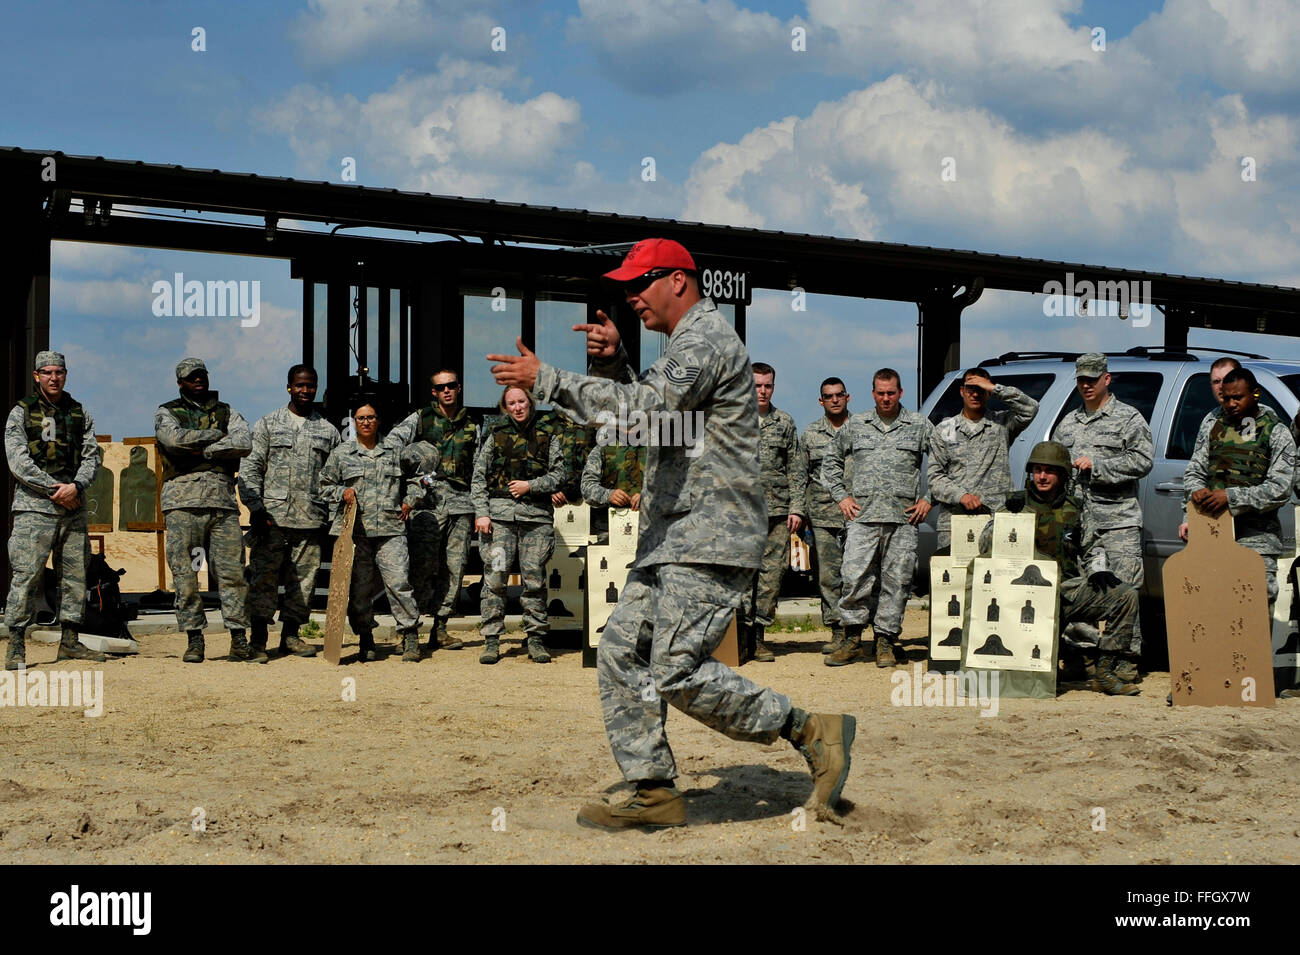 Tech. Sgt. Ricky Furrow demonstrates the new move and shoot portion of the Air Force Rifle Qualification Course. - Stock Image